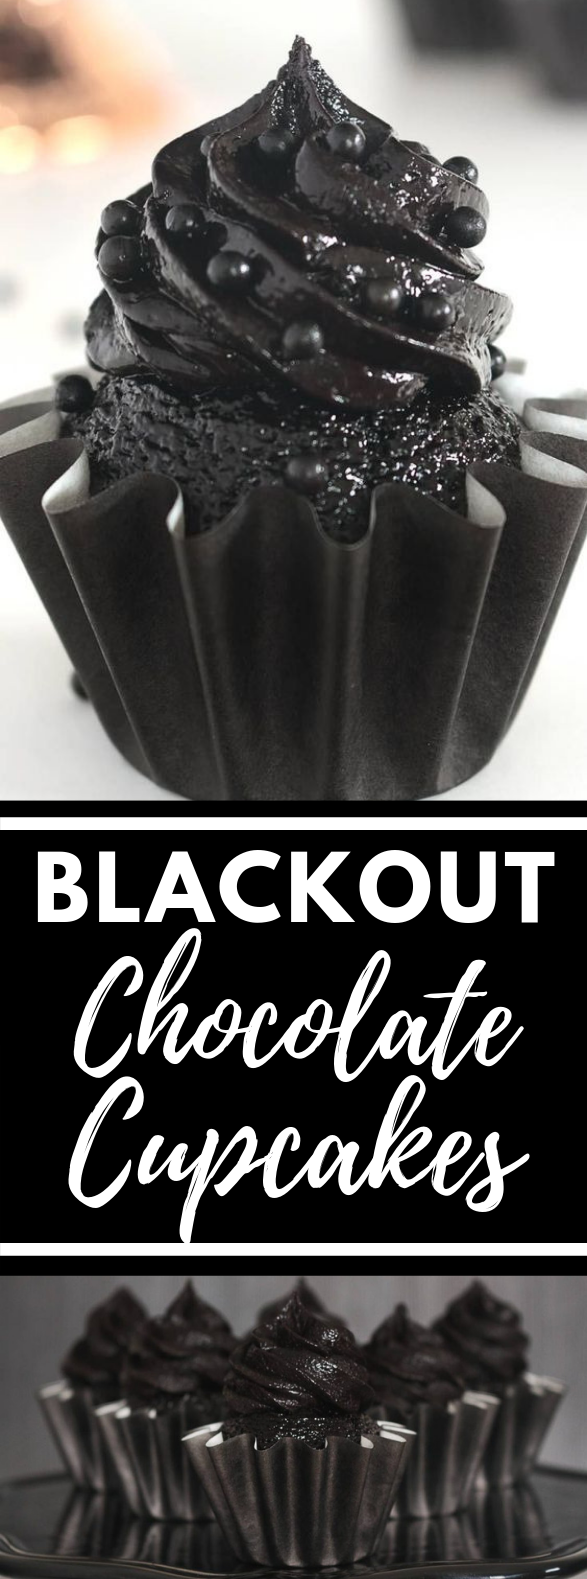 Blackout Chocolate Cupcakes and Blackout Frosting #blackchocolate #frostingrecipes